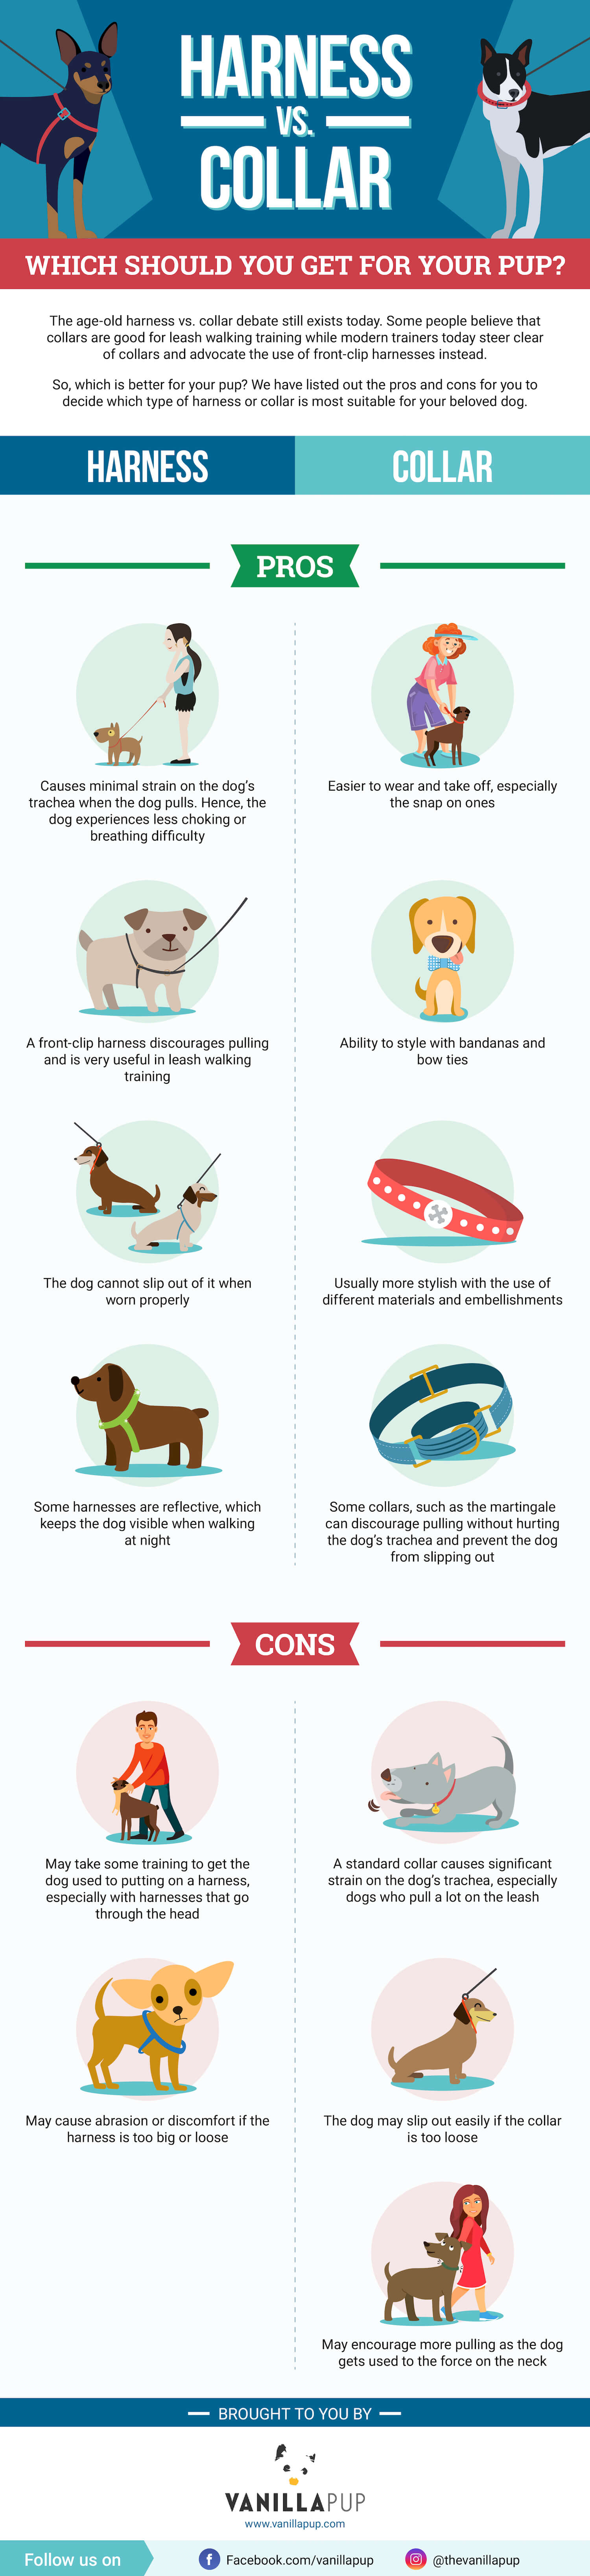 Infographic - Dog Harness vs Collar | Vanillapup